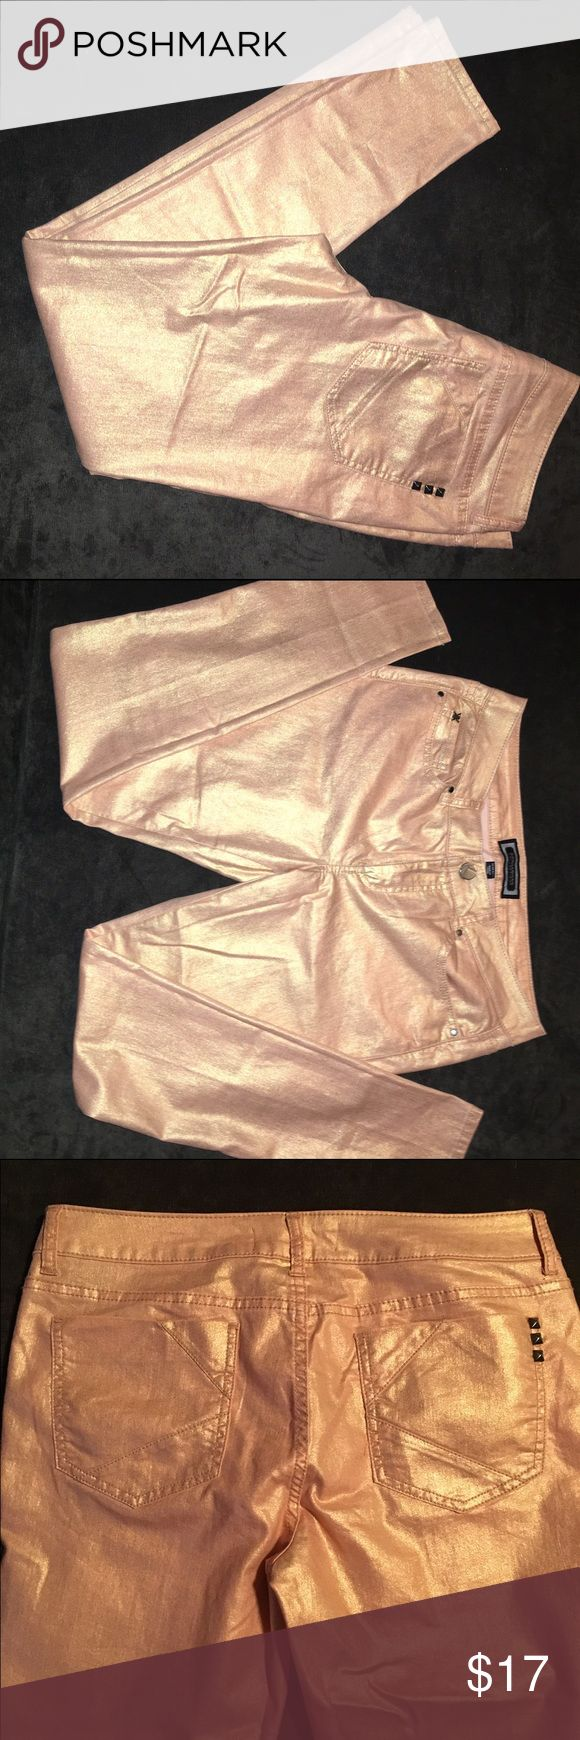 Kardashian Kollection golden peach jeans Kardashian Kollection golden peach skinny jeans with bronze metal rivets & details. Labeled as a size 10 but doesn't fit like my other Kardashian Kollection colored skinny jeans. Fit is more like a size 8. Never worn because they never fit right but tags were removed & since lost. Kardashian Kollection Pants Skinny